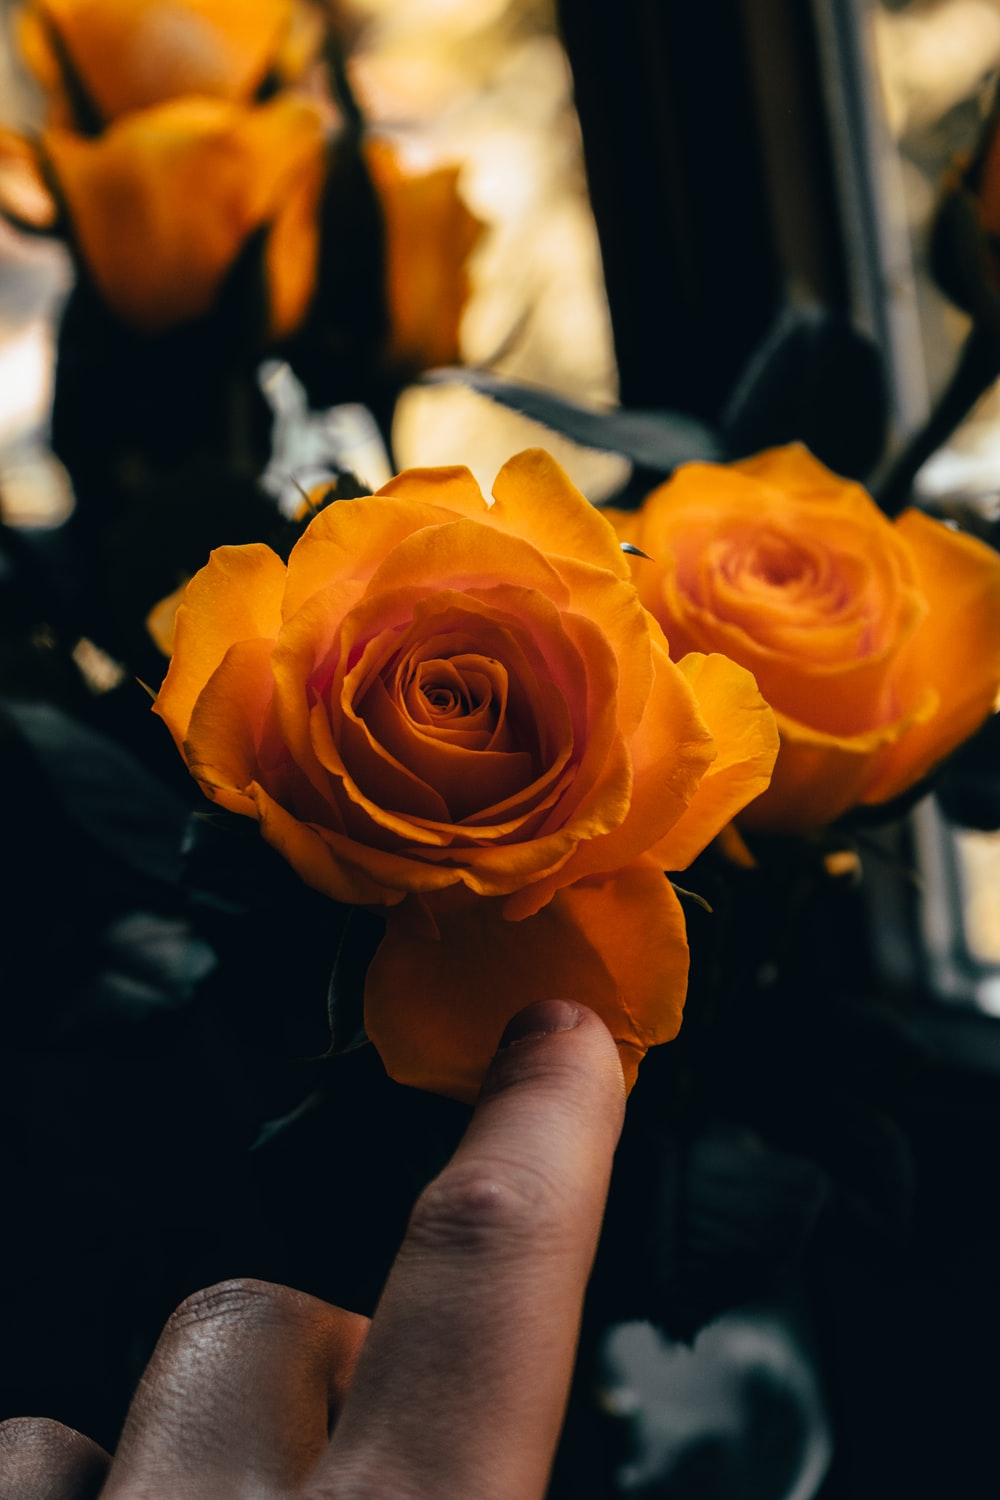 person holding orange rose in close up photography